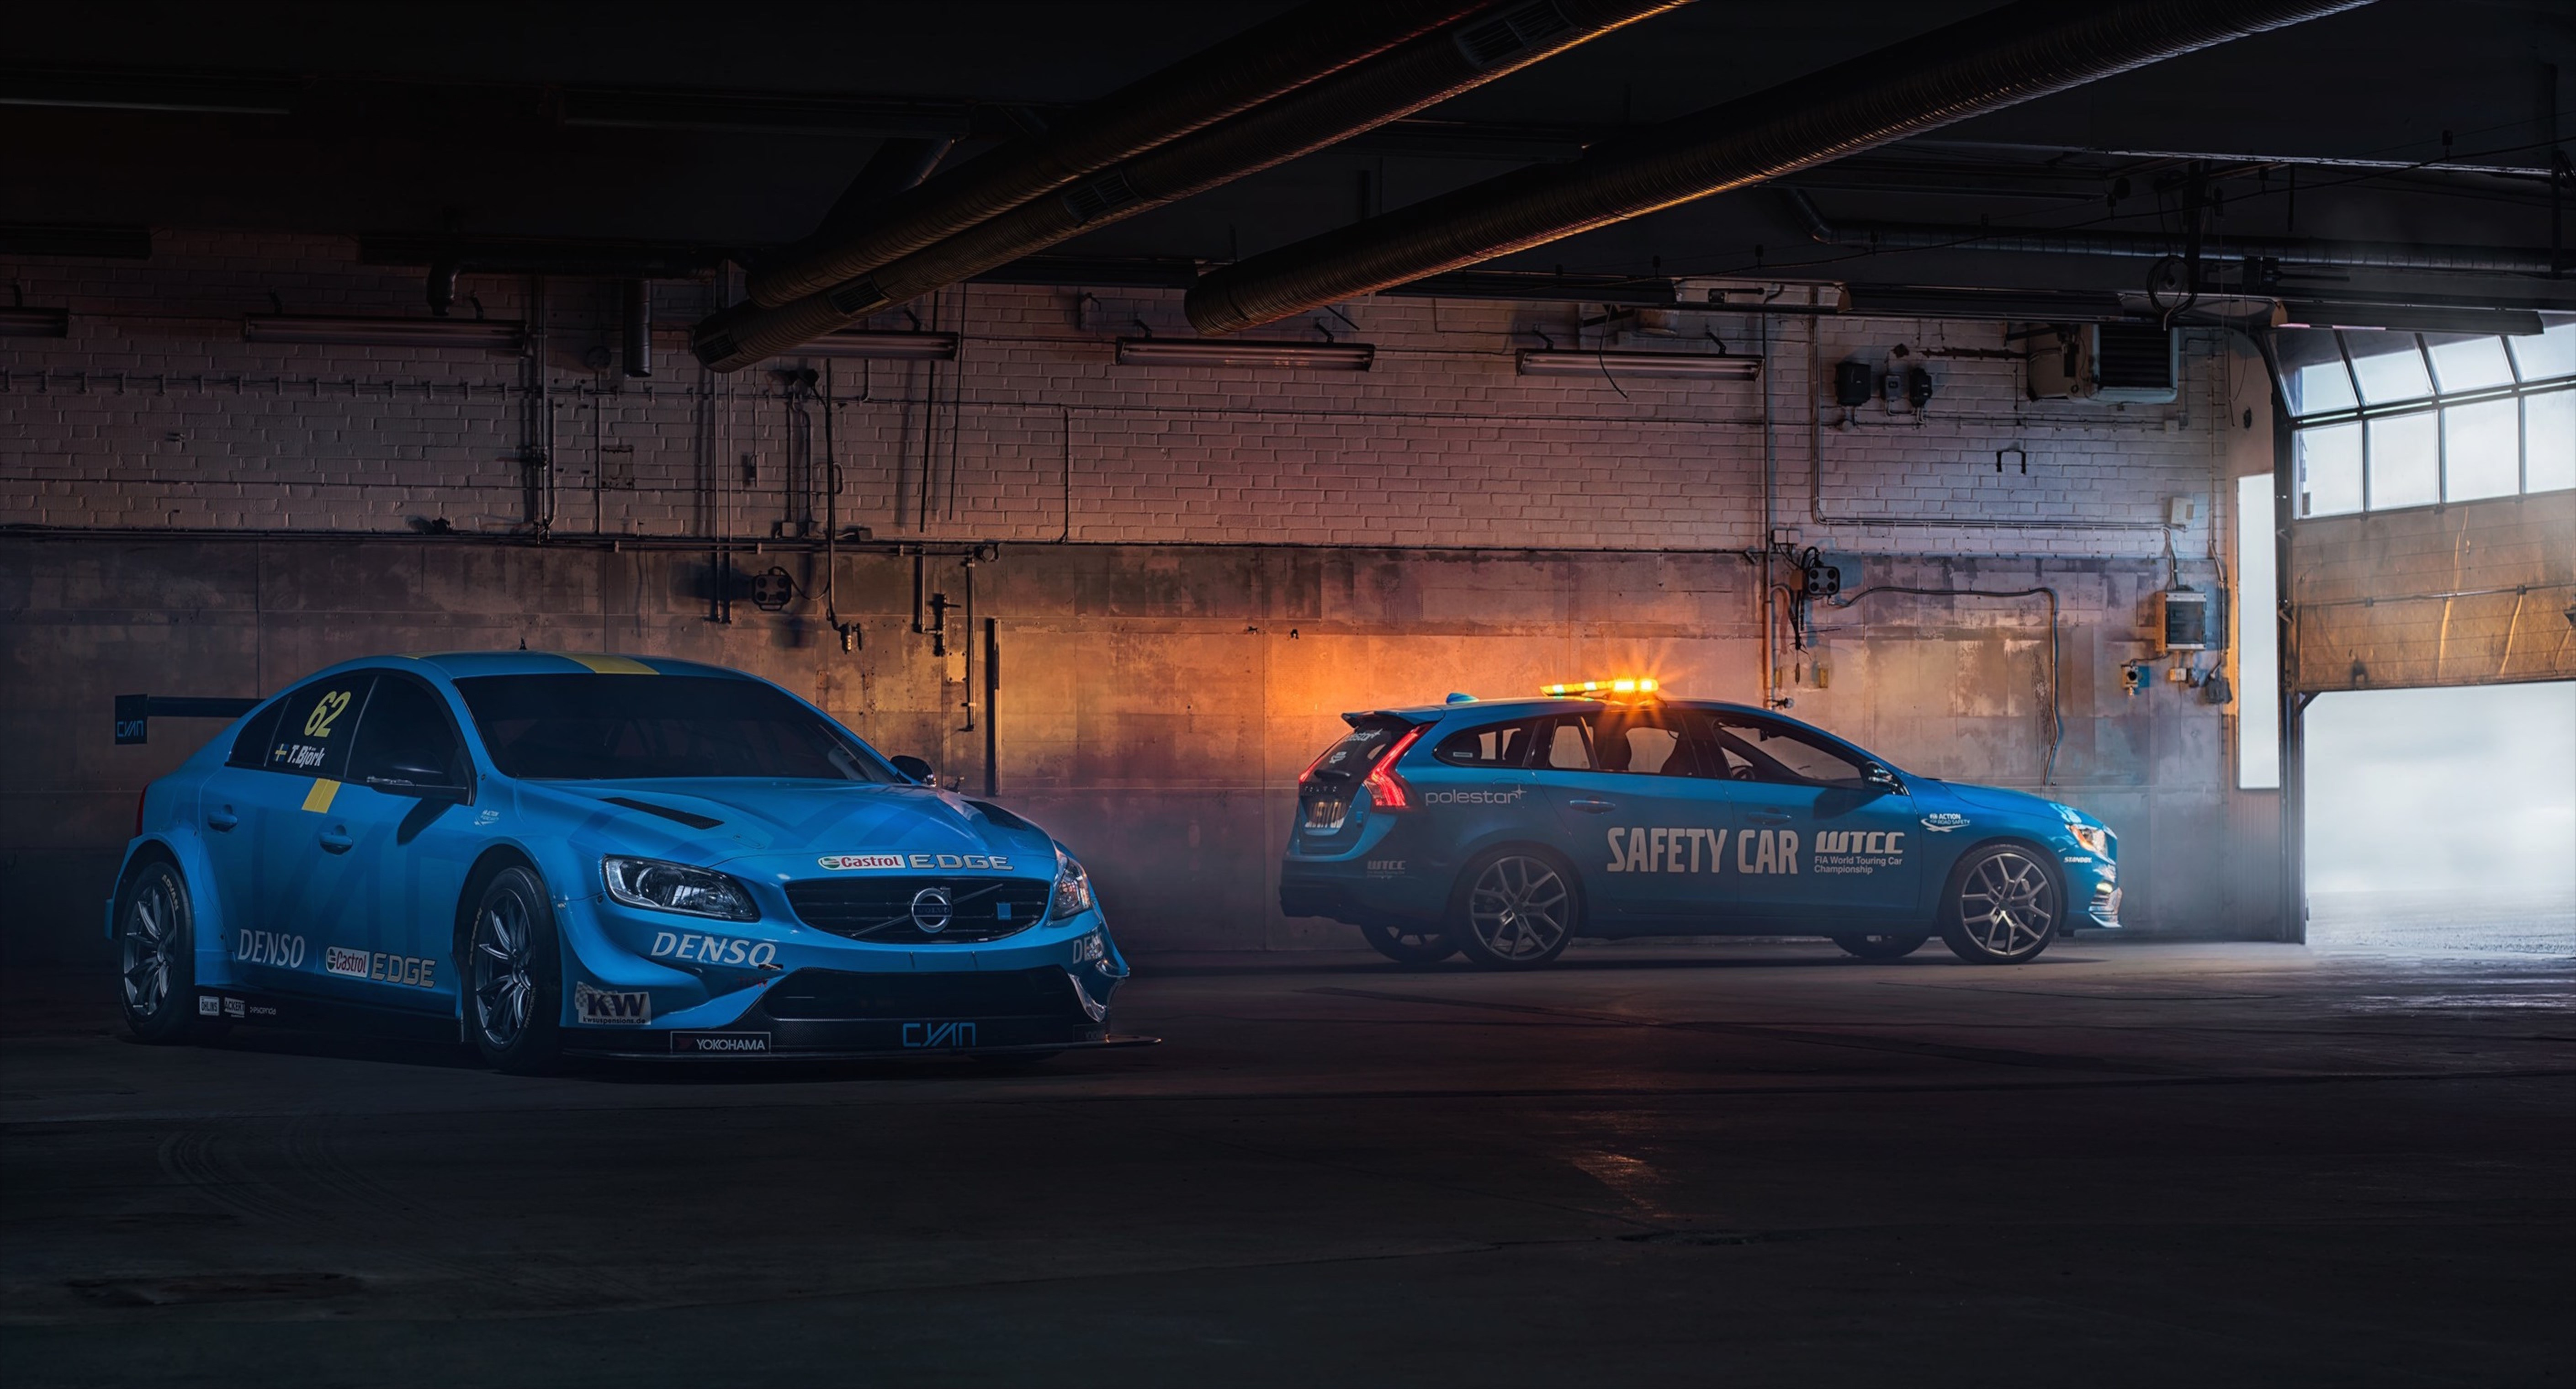 Quotes For Wallpapers Of Pc Wallpaper Volvo V60 Polestar Wtcc Safety Car Cars